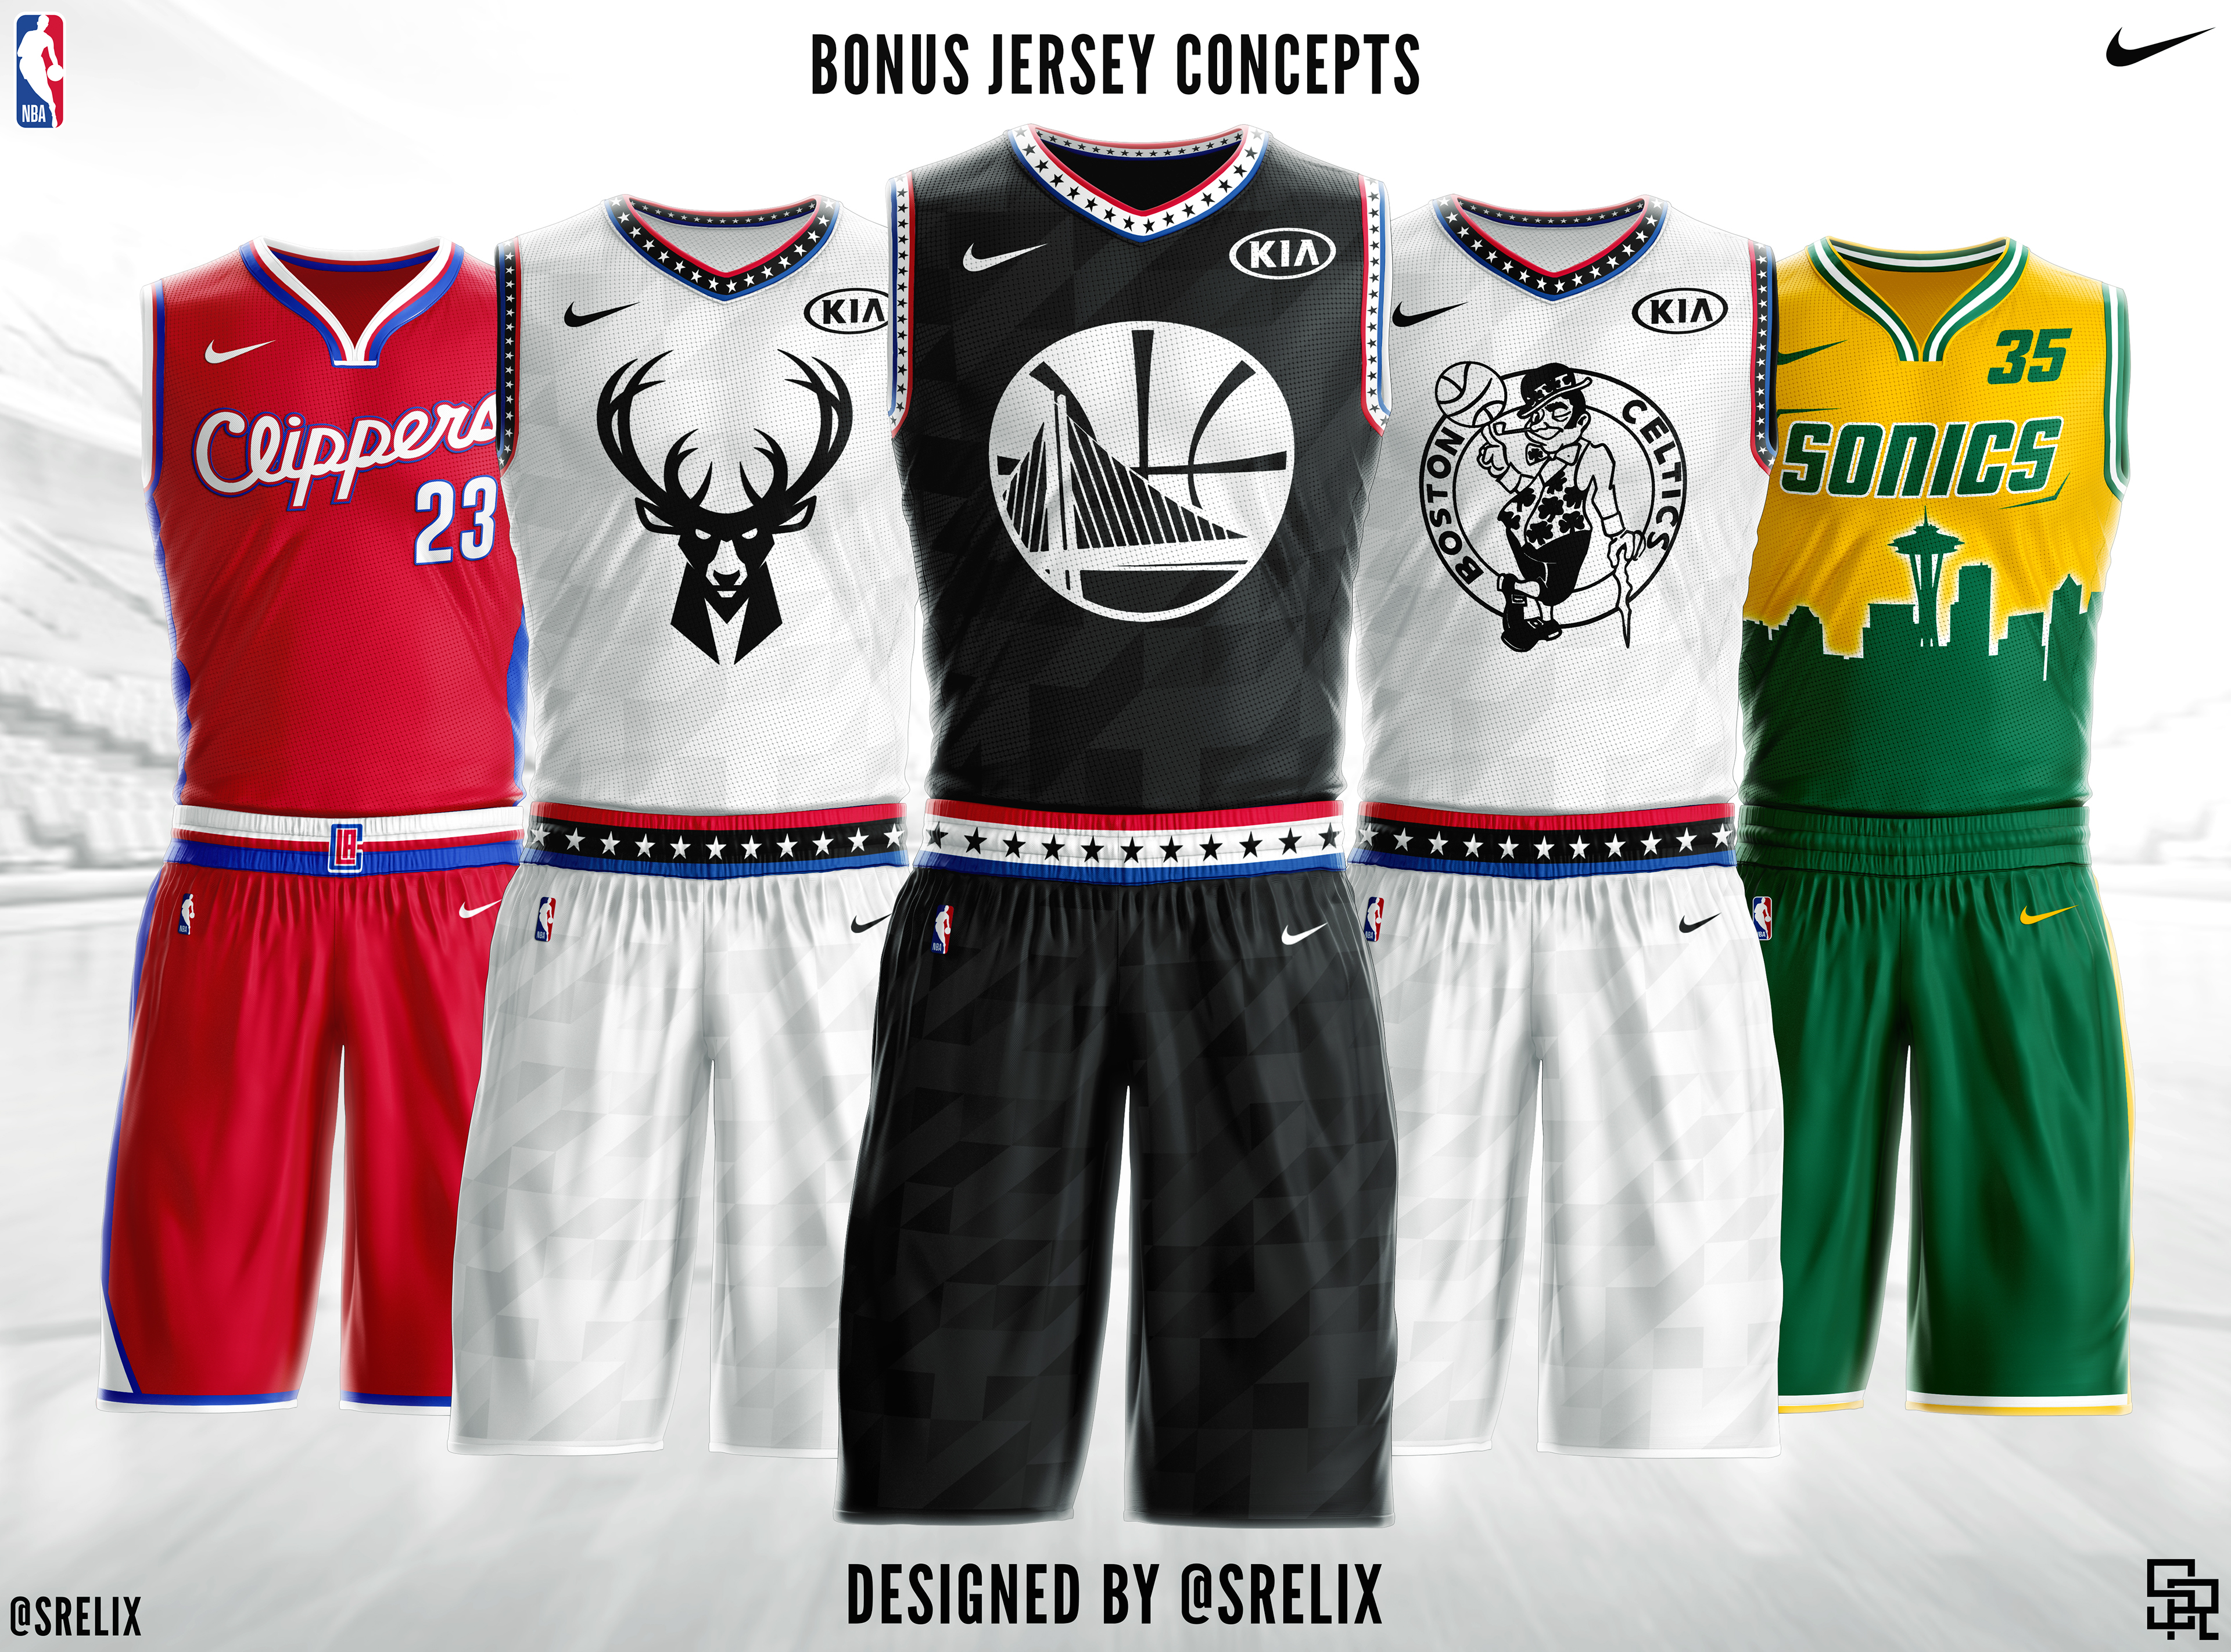 97bcf48743f NBA Jersey Concepts on Behance